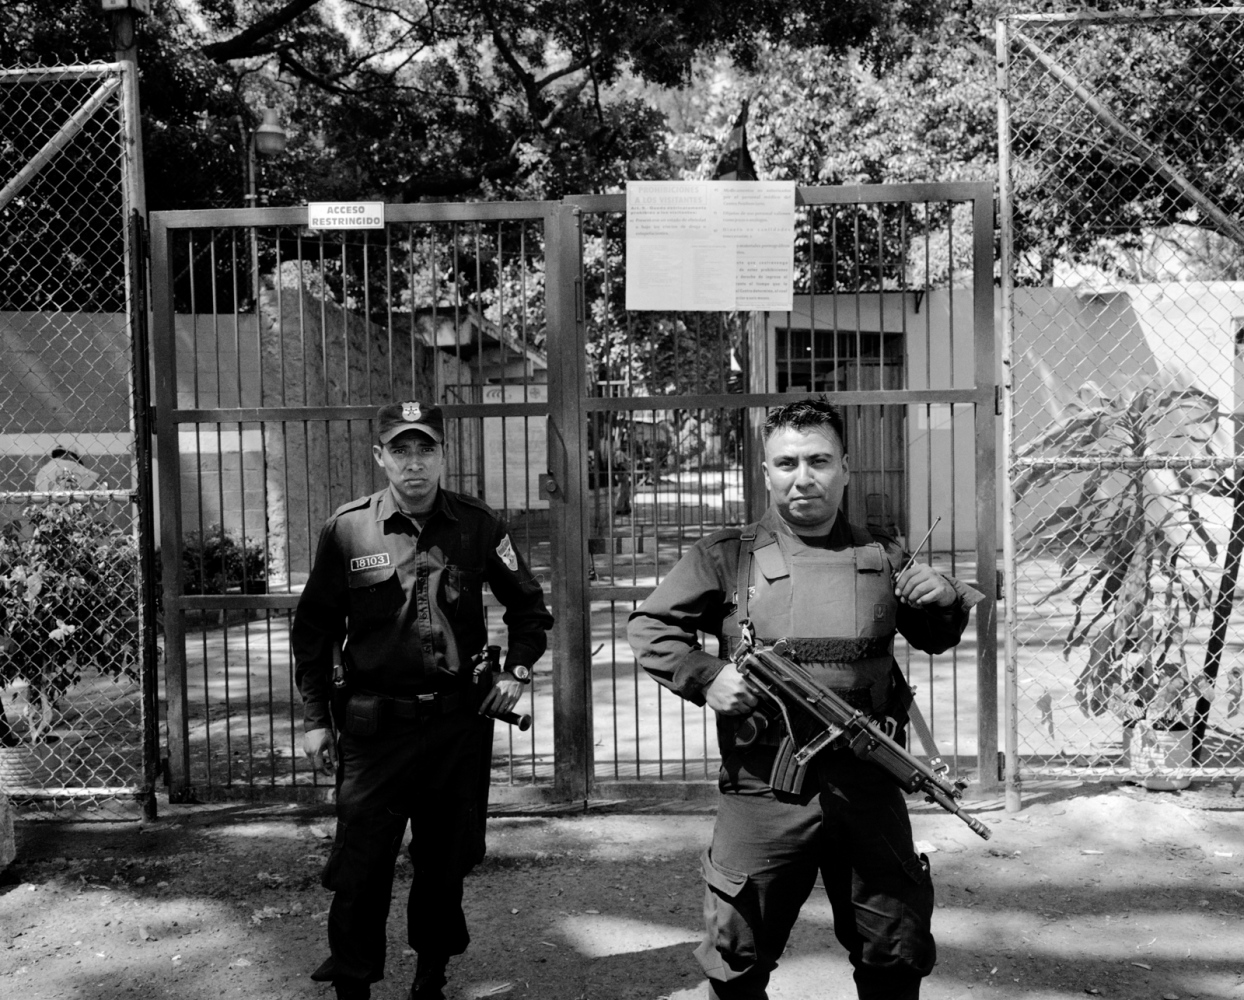 Guards stand outside the prison where Carmen Climaco was being held. Climaco was given 30 years for an abortion that was ruled a homicide. 2006